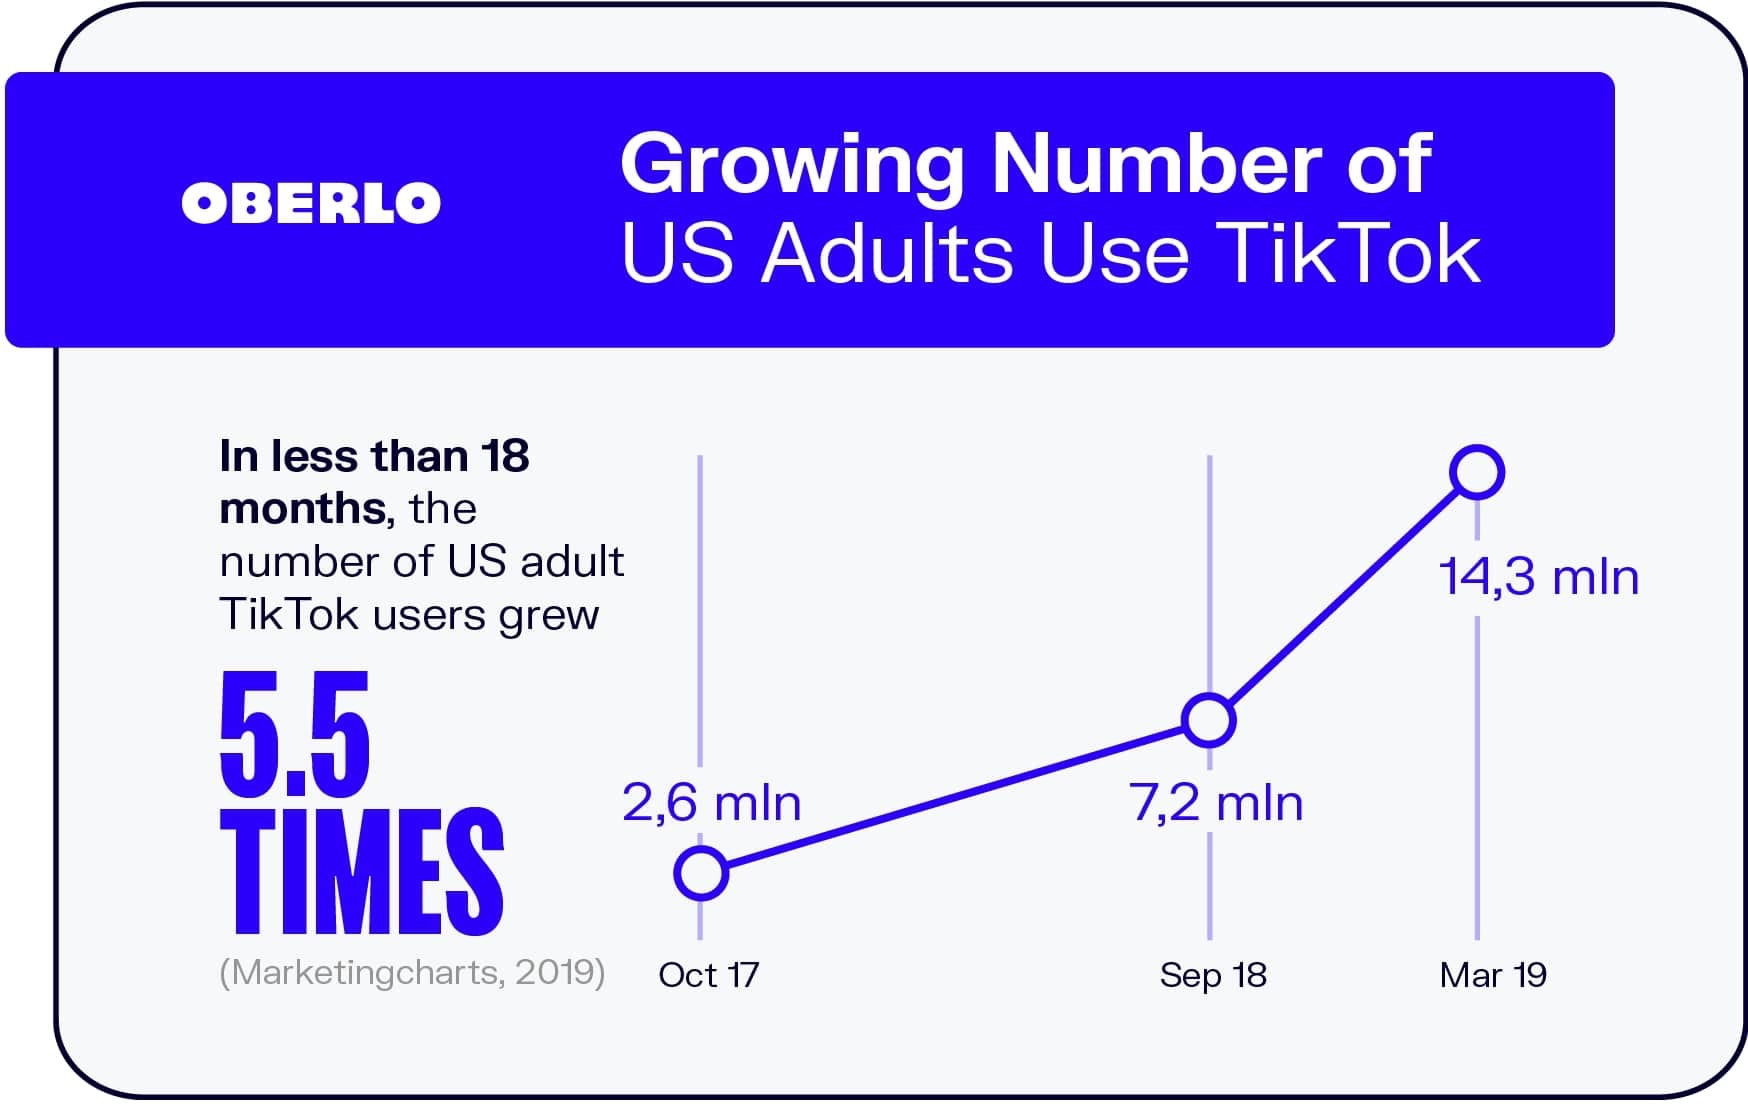 Growing Number of US Adults Use TikTok